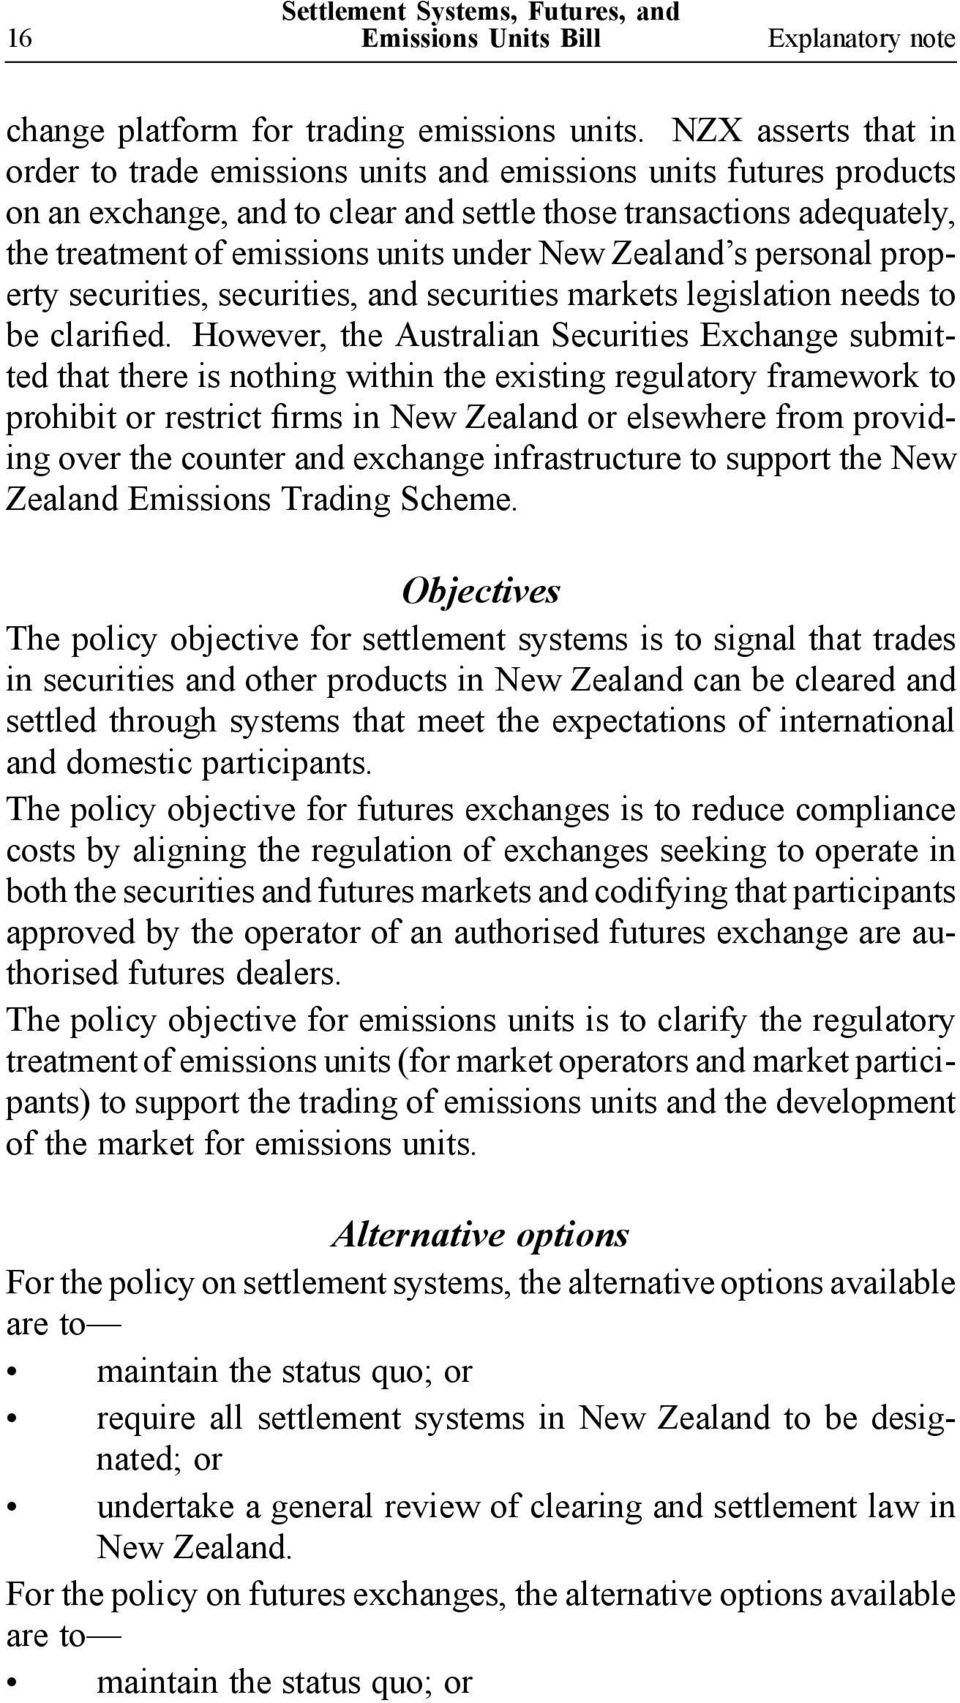 New Zealand s personal property securities, securities, and securities markets legislation needs to be clarified.